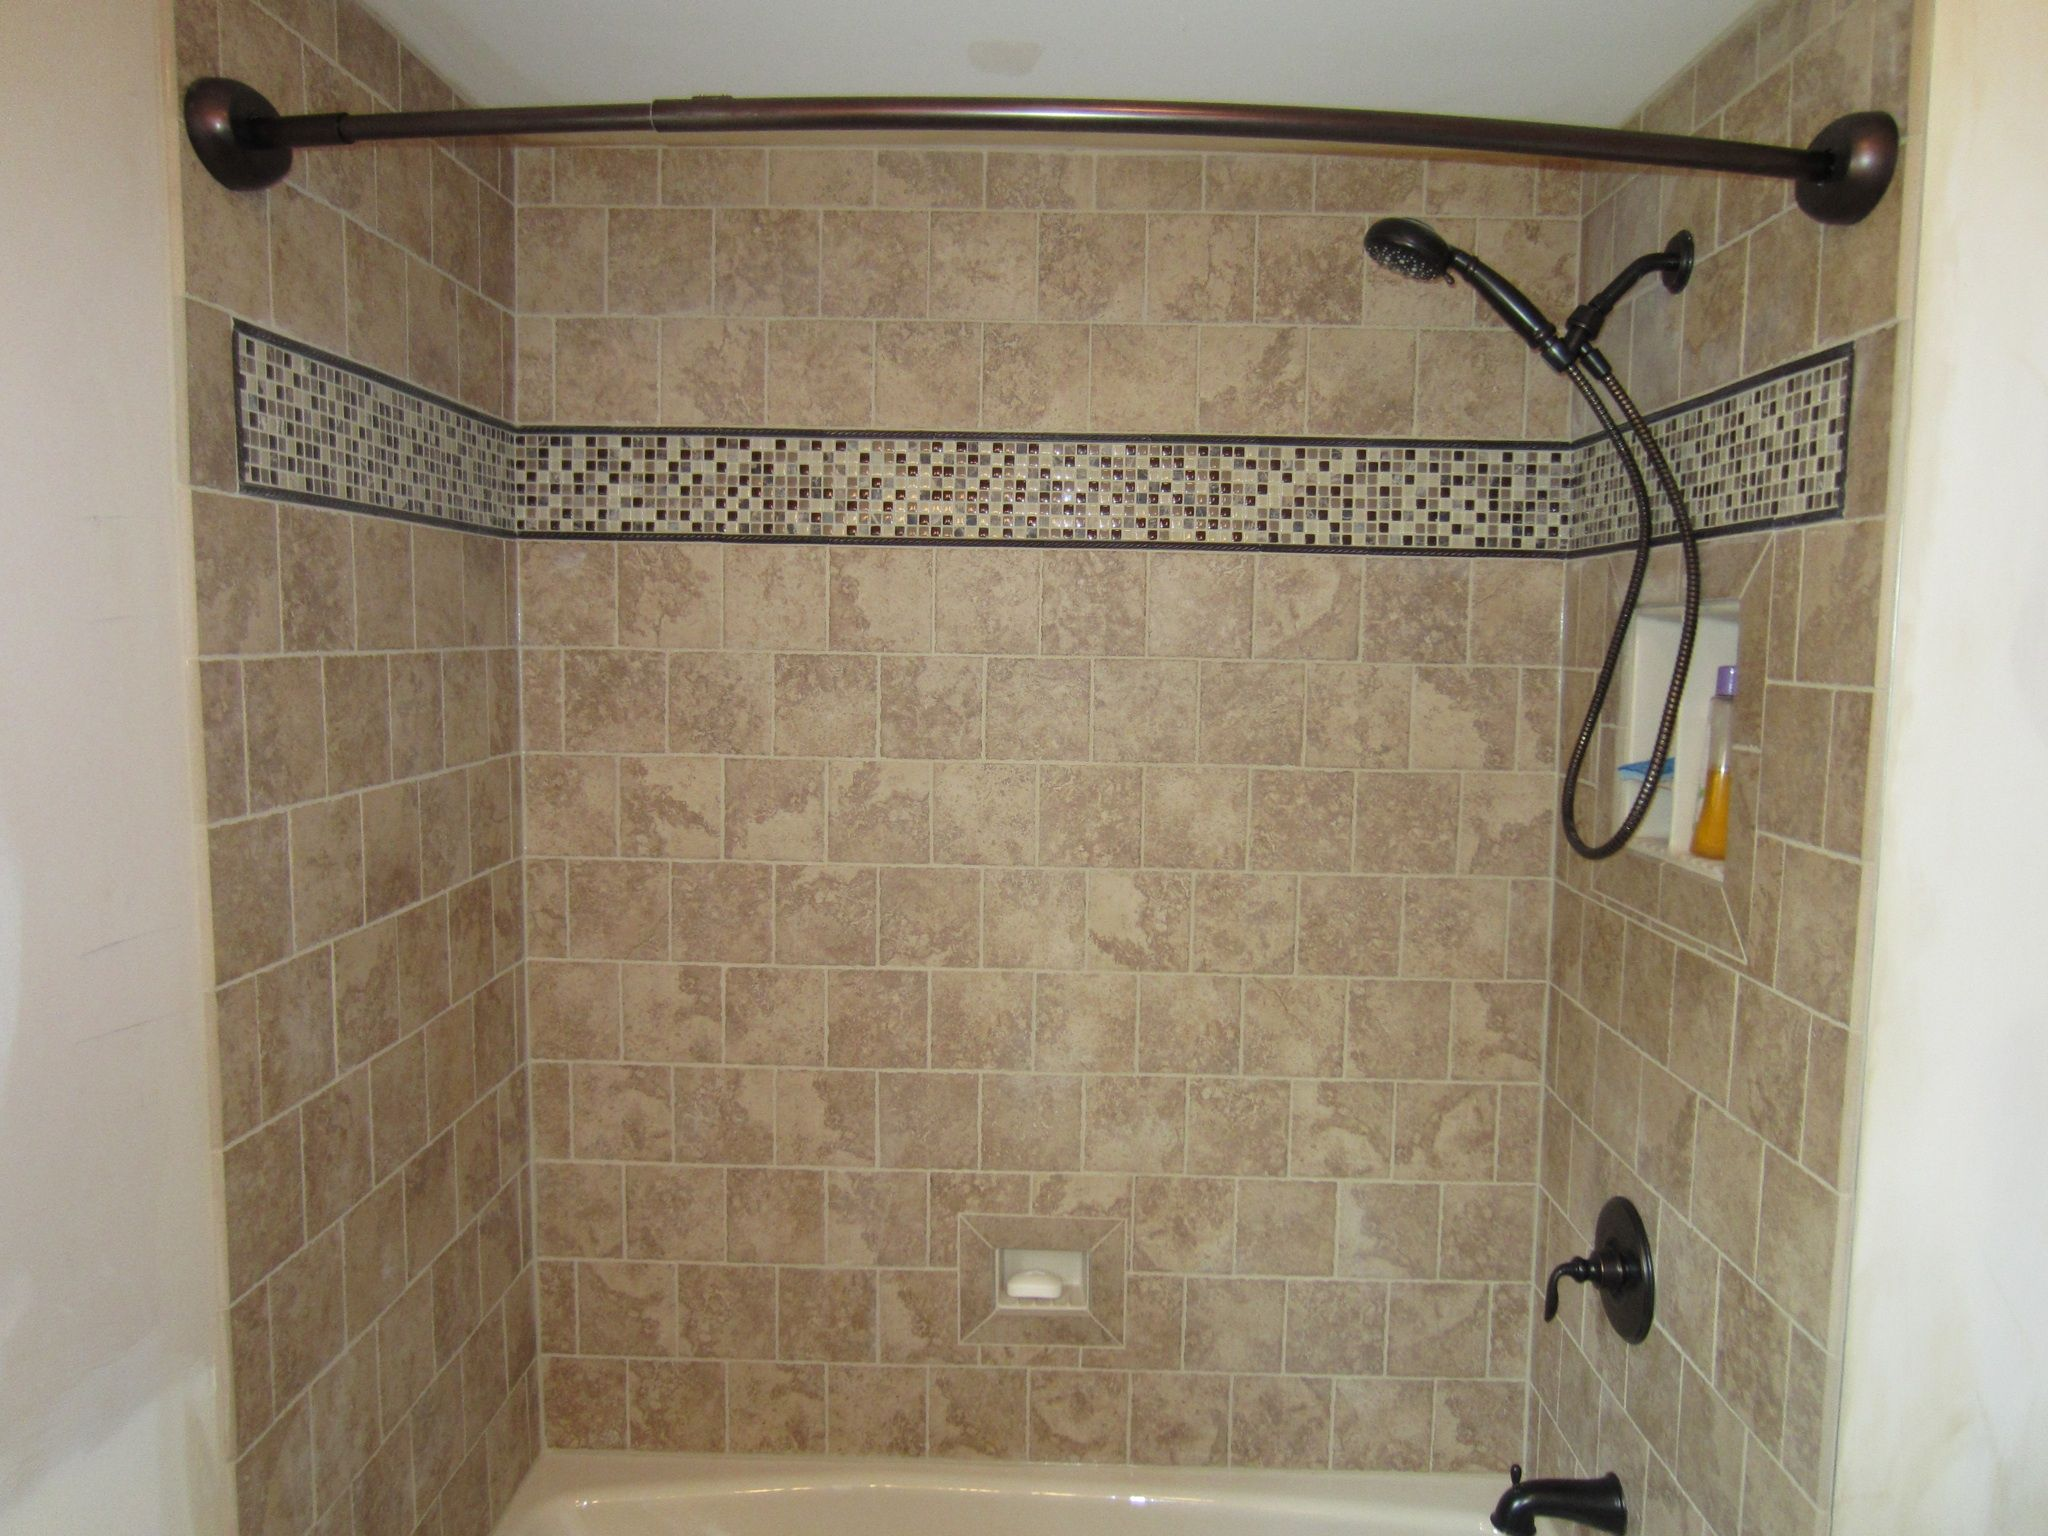 We Installed All New Tiles On The Wall A Tub Recessed Shower Niche Soap Dish